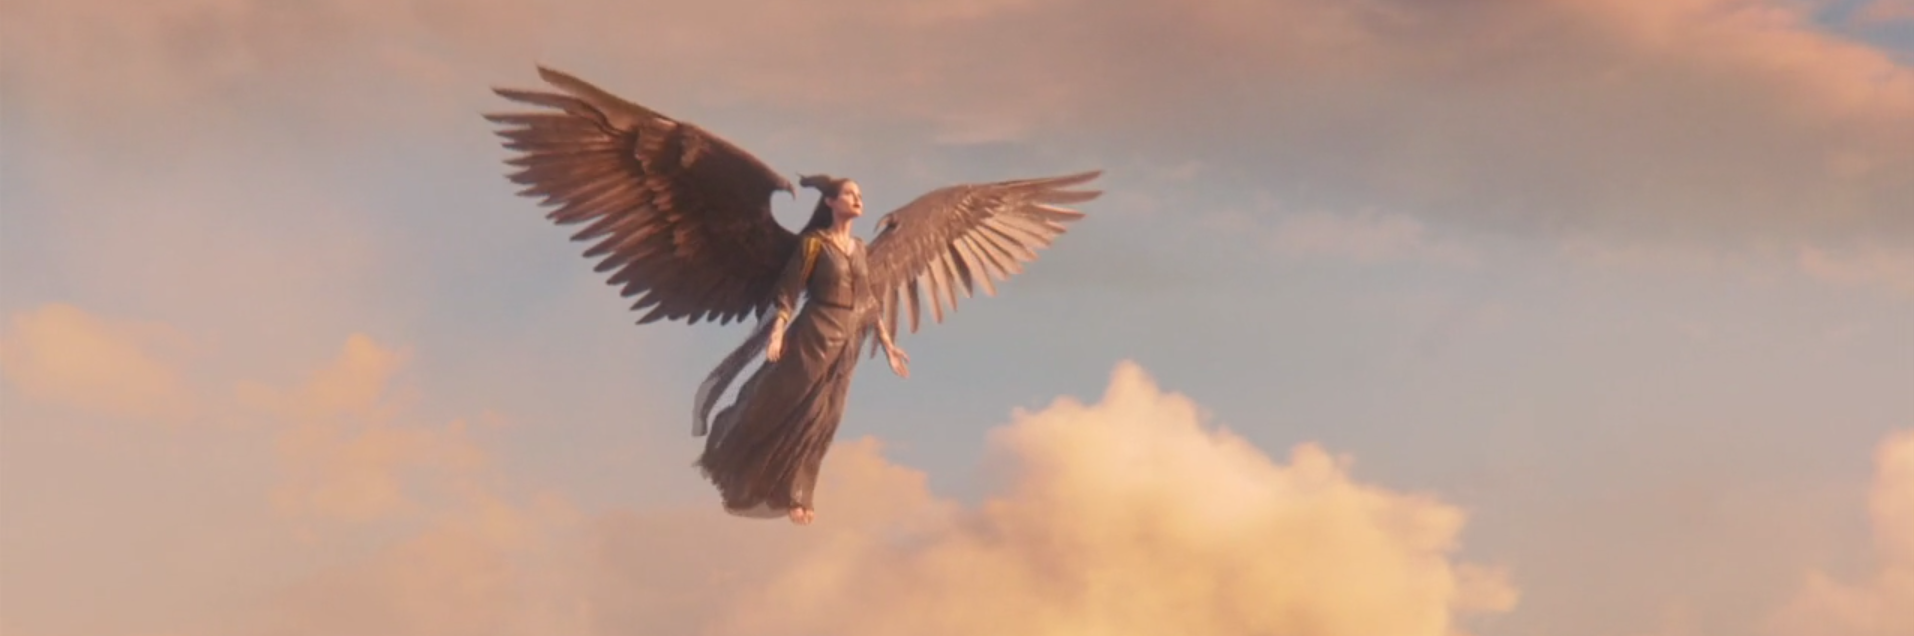 Angelina Jolie as Maleficent flying picture image